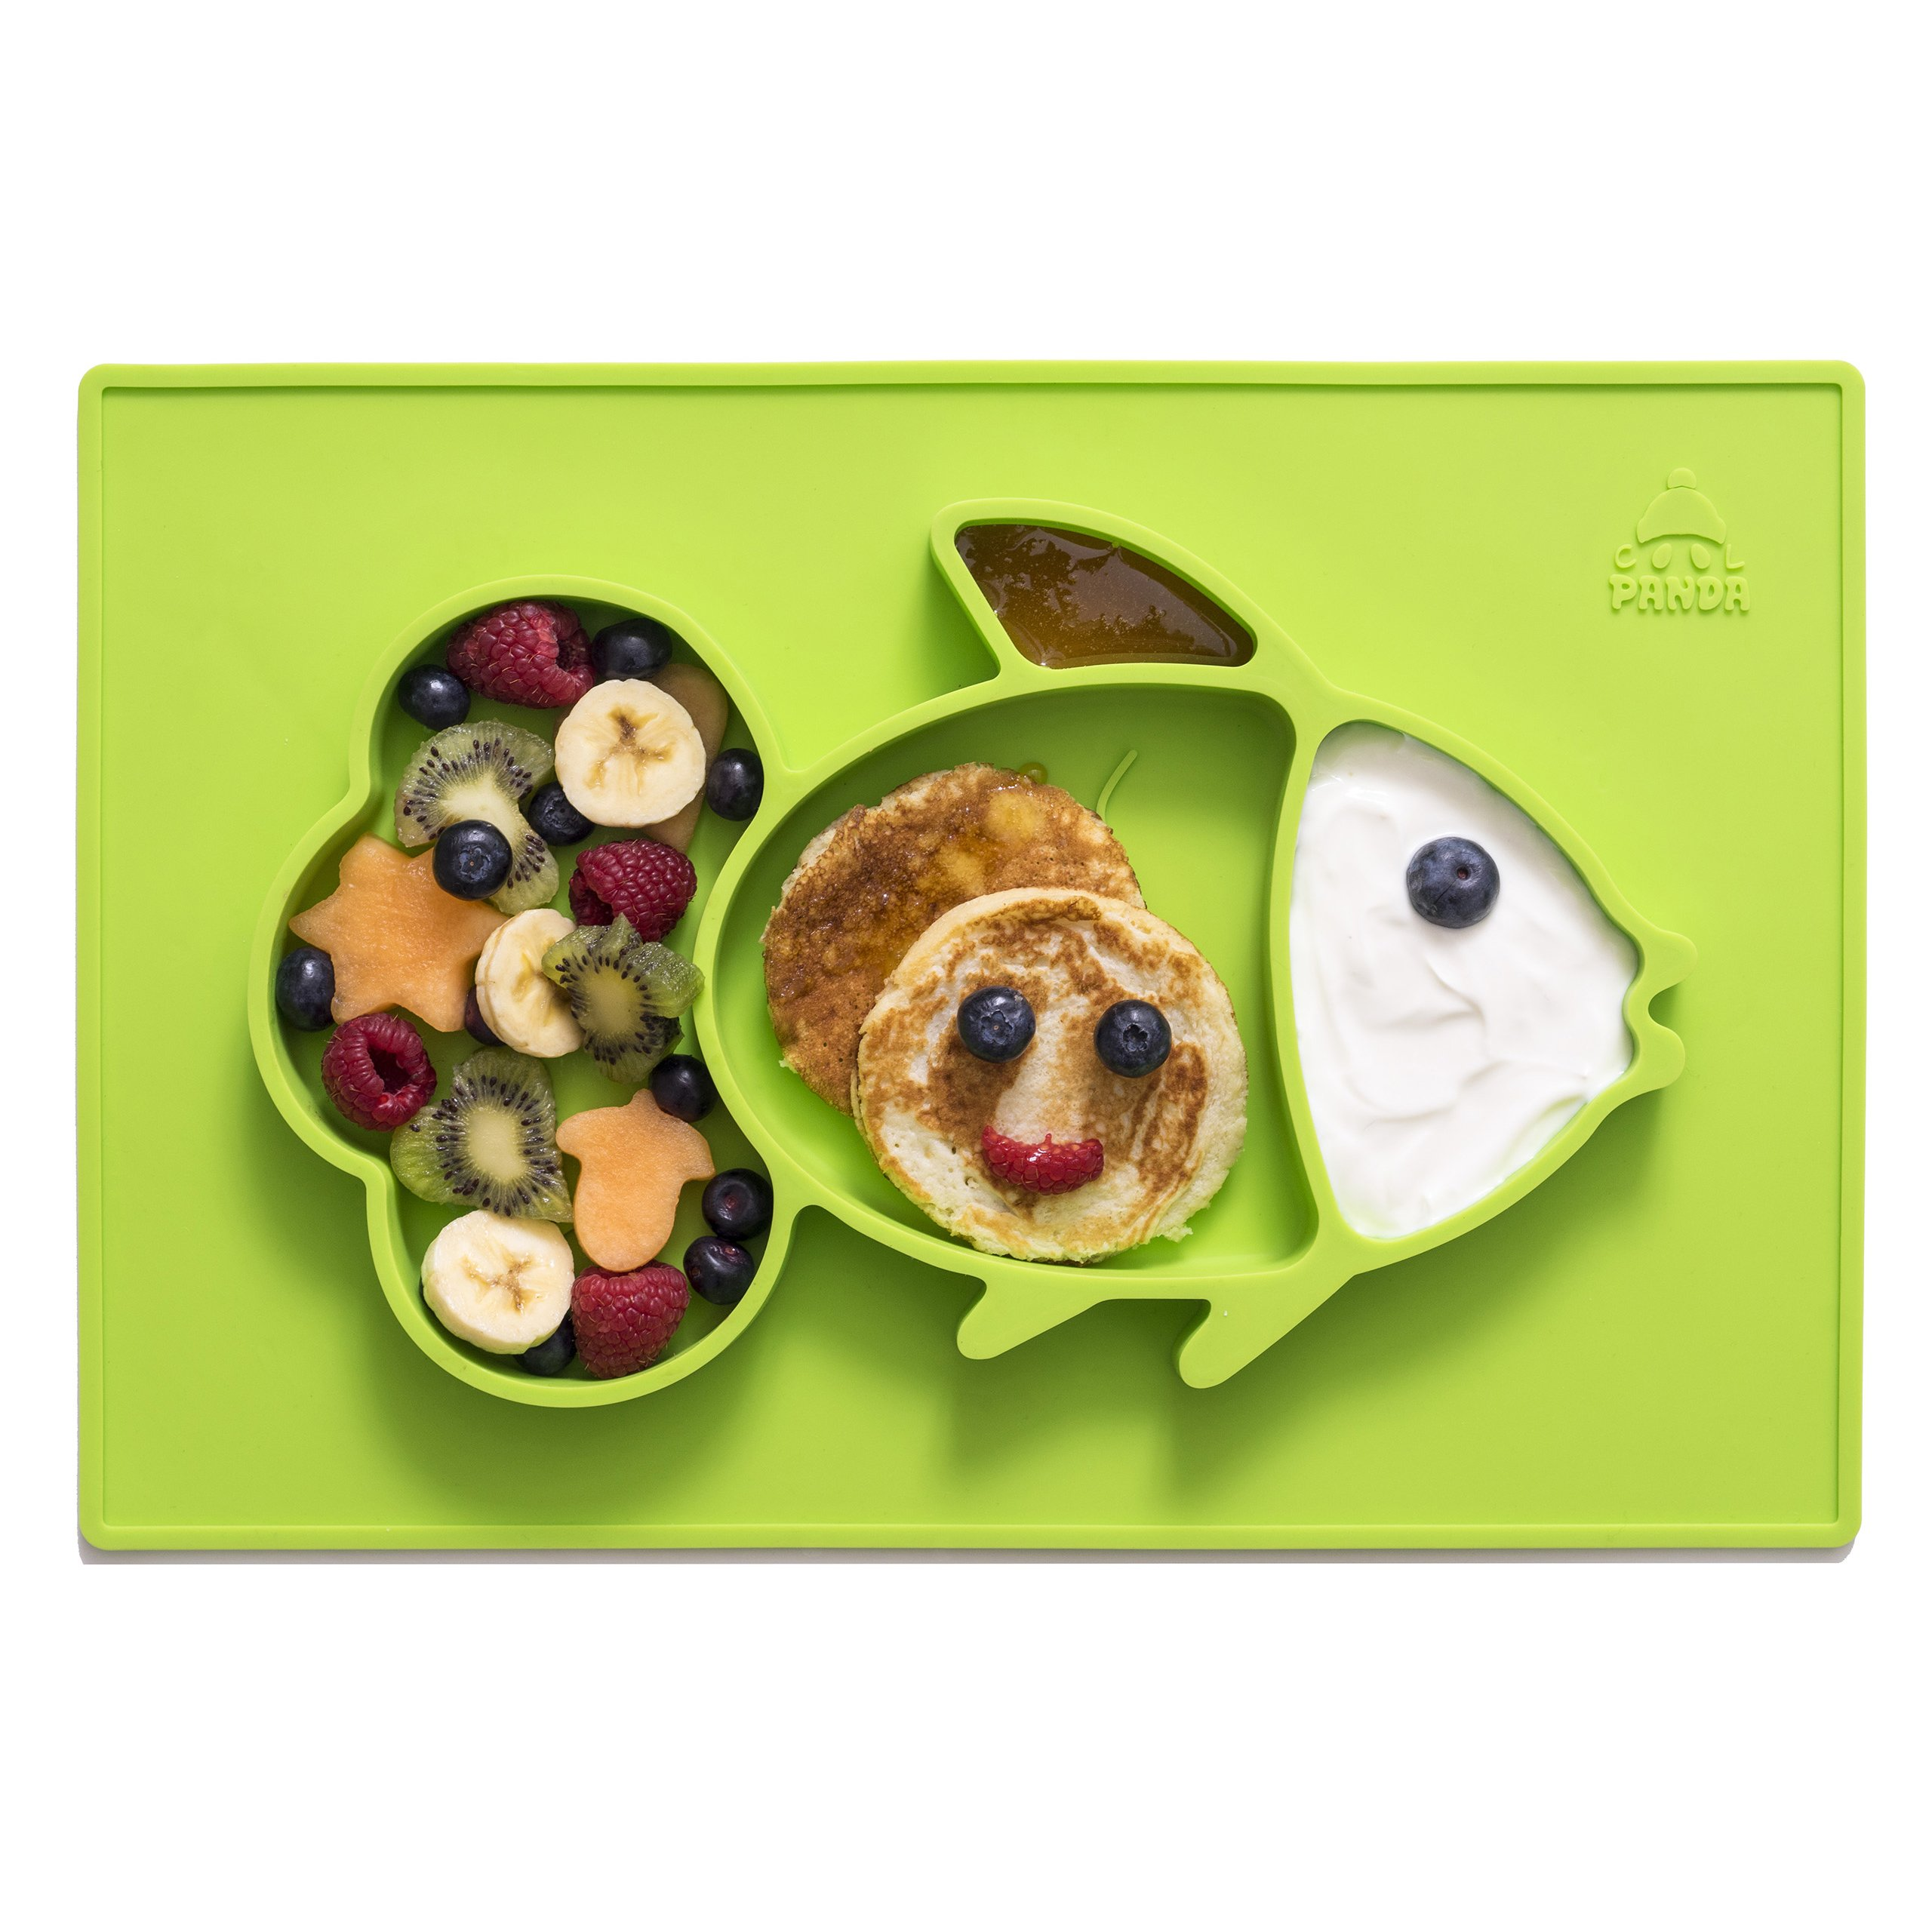 Cool Panda Premium Silicone Baby Placemat Set for Kids & Toddlers, Reusable Travel Bag, Non Slip Toddler Plates, Large Size: 15''x10''x1'', Green Silicone Bowl Mat with Spoon and Healthy Recipes E-Book